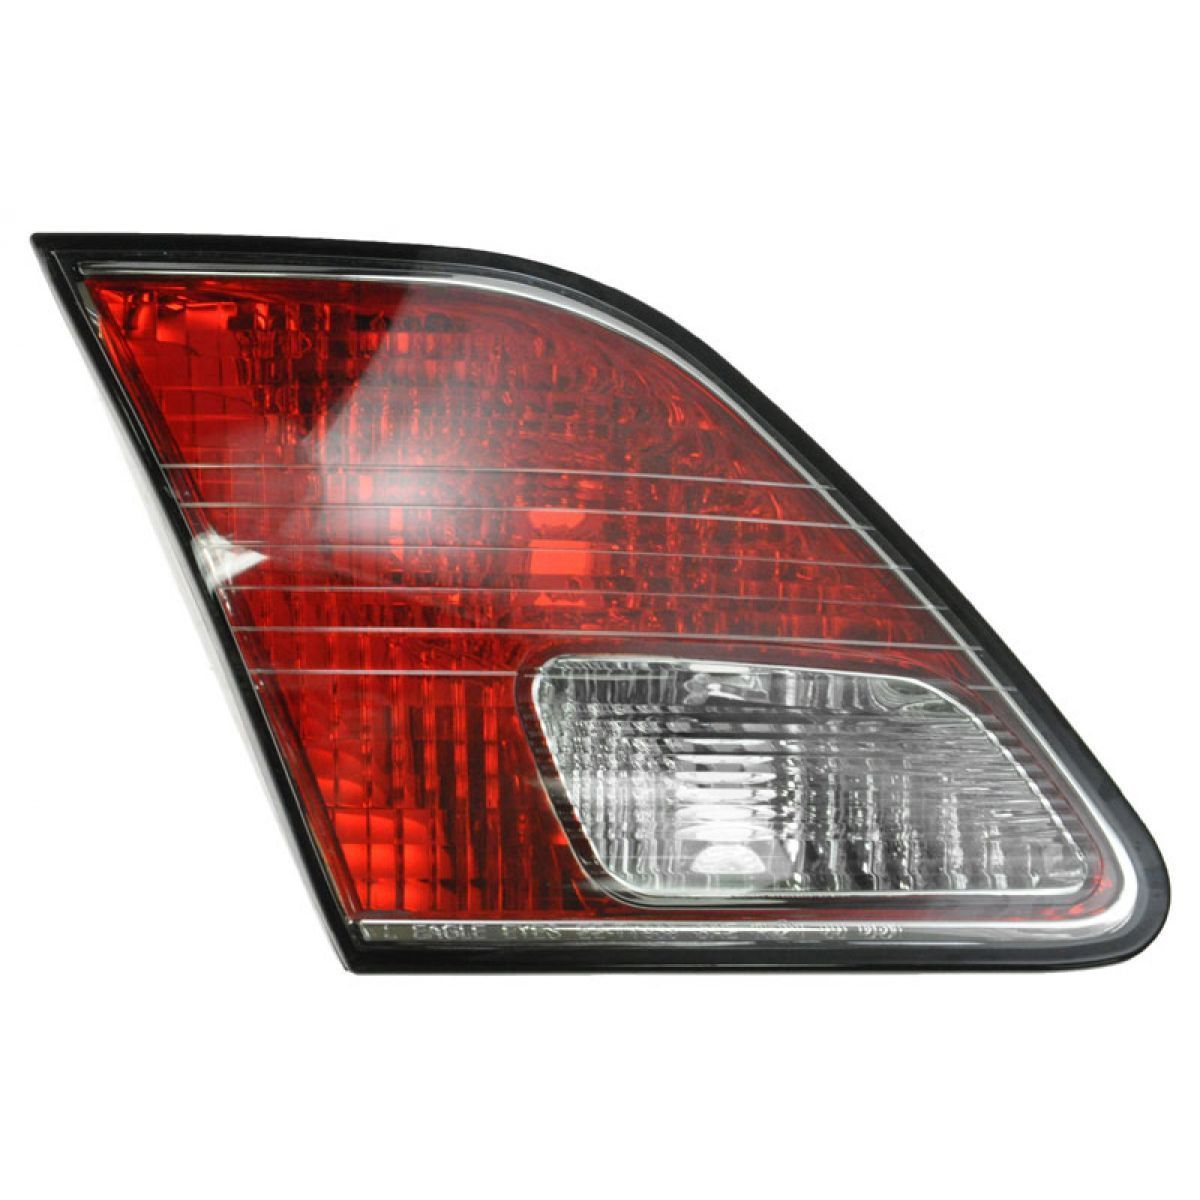 Lexus ES300 2002 2003 2004 tail light inner left driver